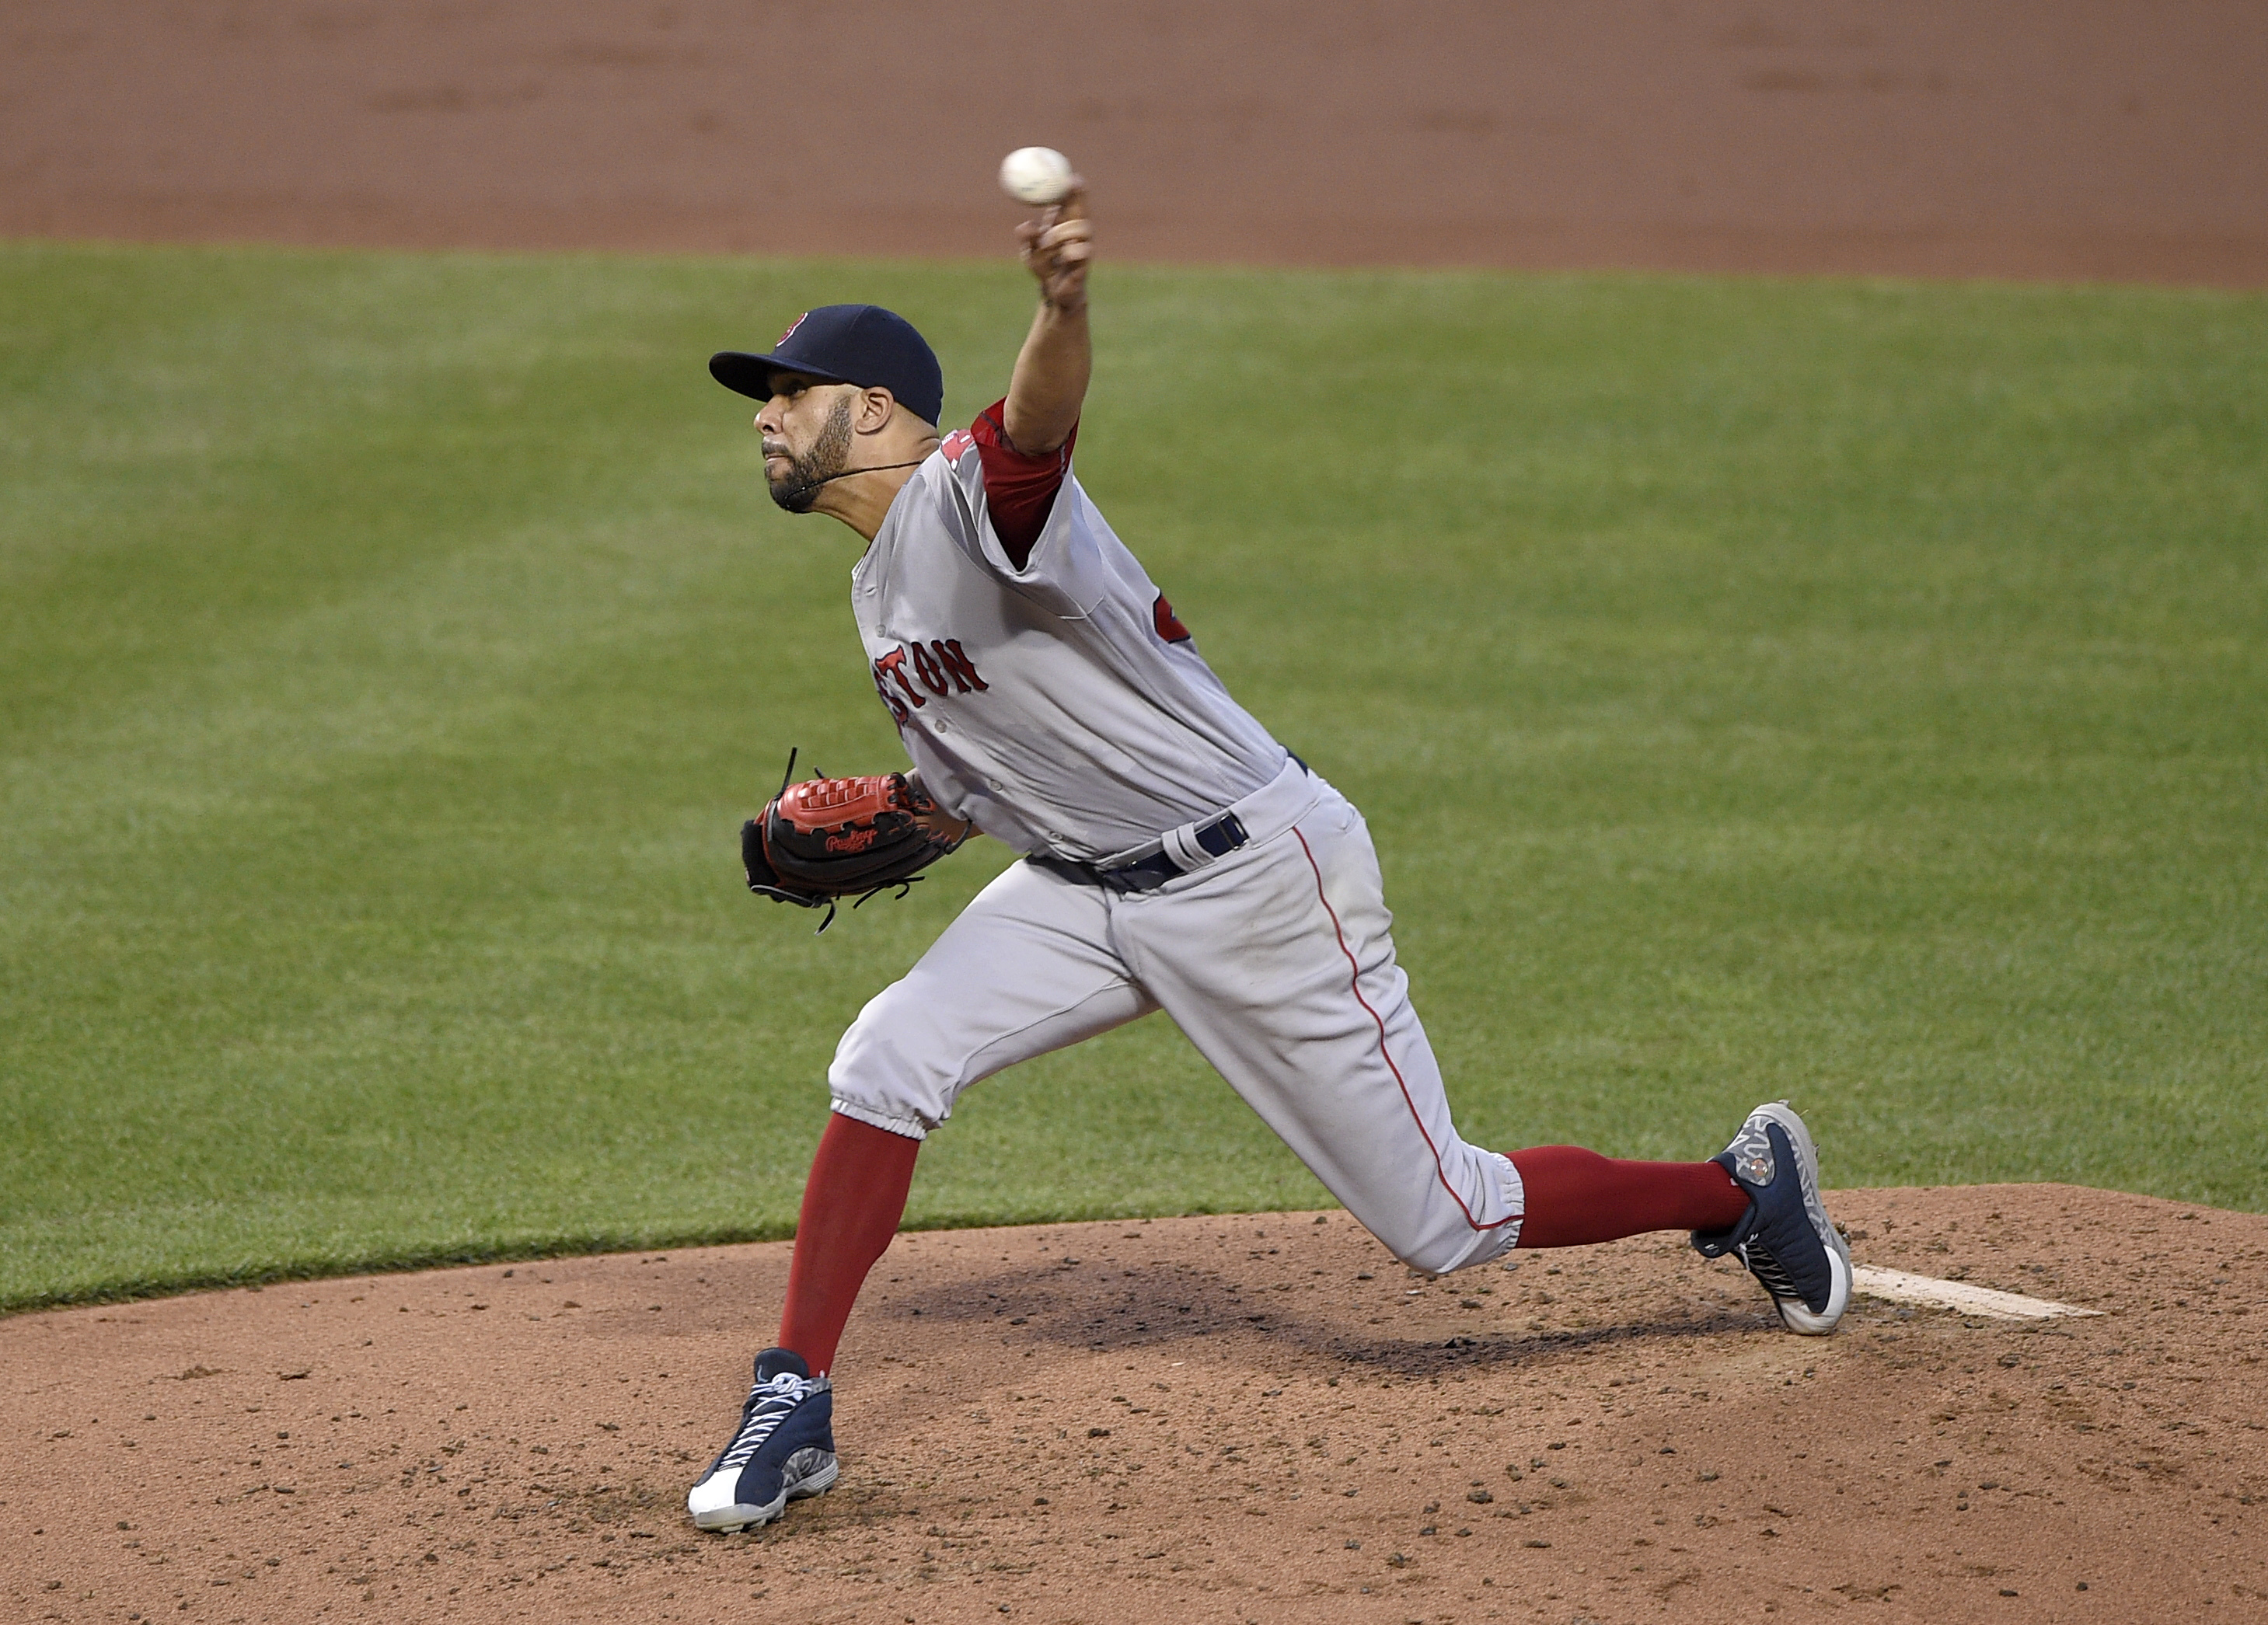 Boston Red Sox starter David Price delivers a pitch during the second inning of a baseball game against the Baltimore Orioles, Wednesday, Aug. 17, 2016, in Baltimore. (AP Photo/Nick Wass)